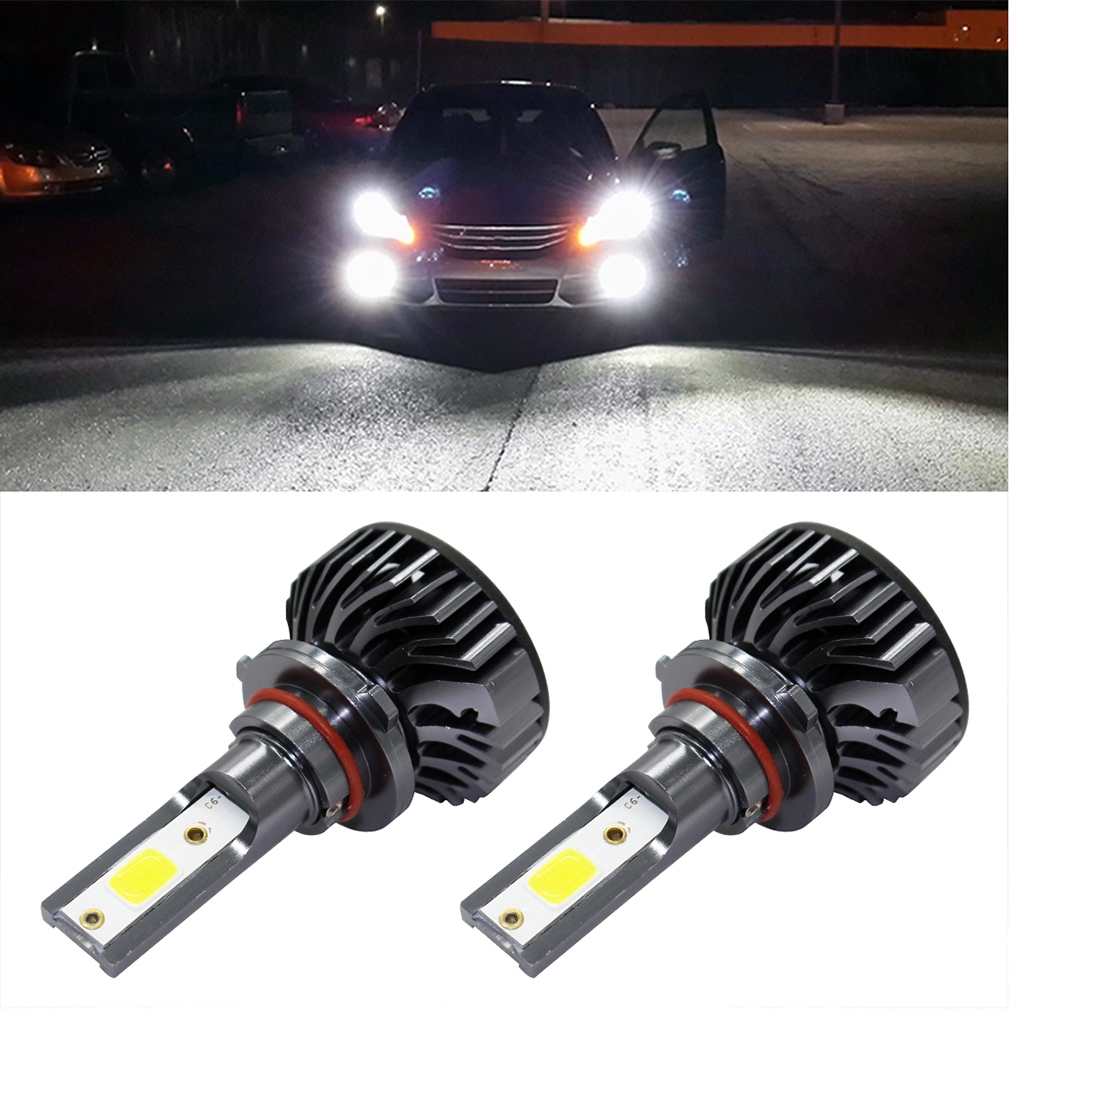 EV8 2 PCS 9006 / HB4 36W 3000LM 6500K DOB LED Headlight Bulbs High Beam Conversion Kit DC 9-32V (Xenon White)